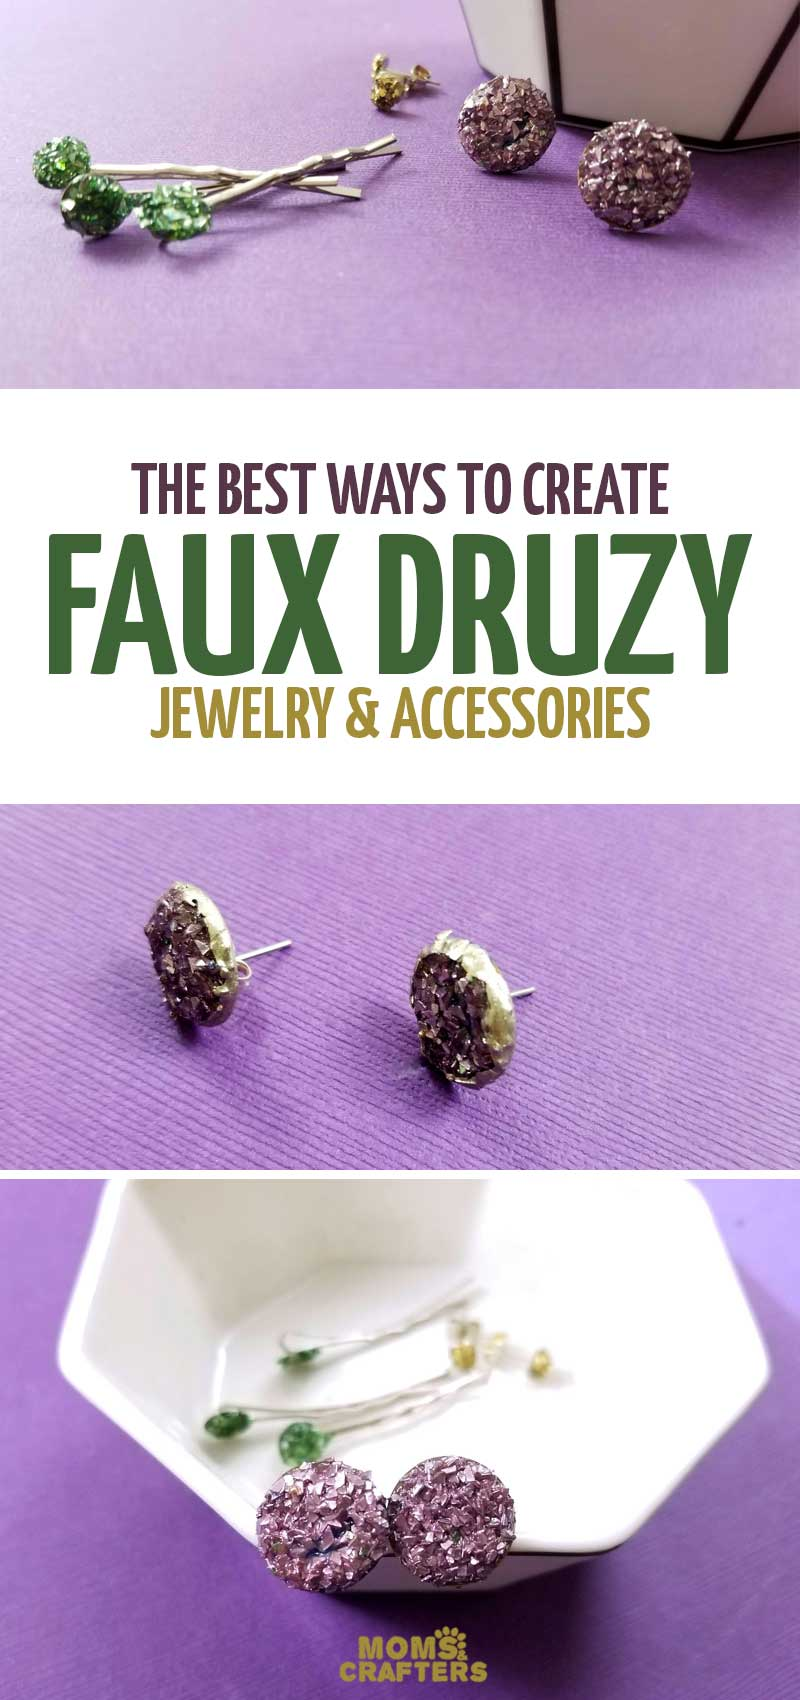 Make these beautiful faux druzy earrings DIY - a faux agate druze jewelry making tutorial for beginners! This easy jewellery project uses crushed glass glitter and features experimentaiton to narrow down the best way to craft this cool jewelry making project for teens and tweens - and adults!